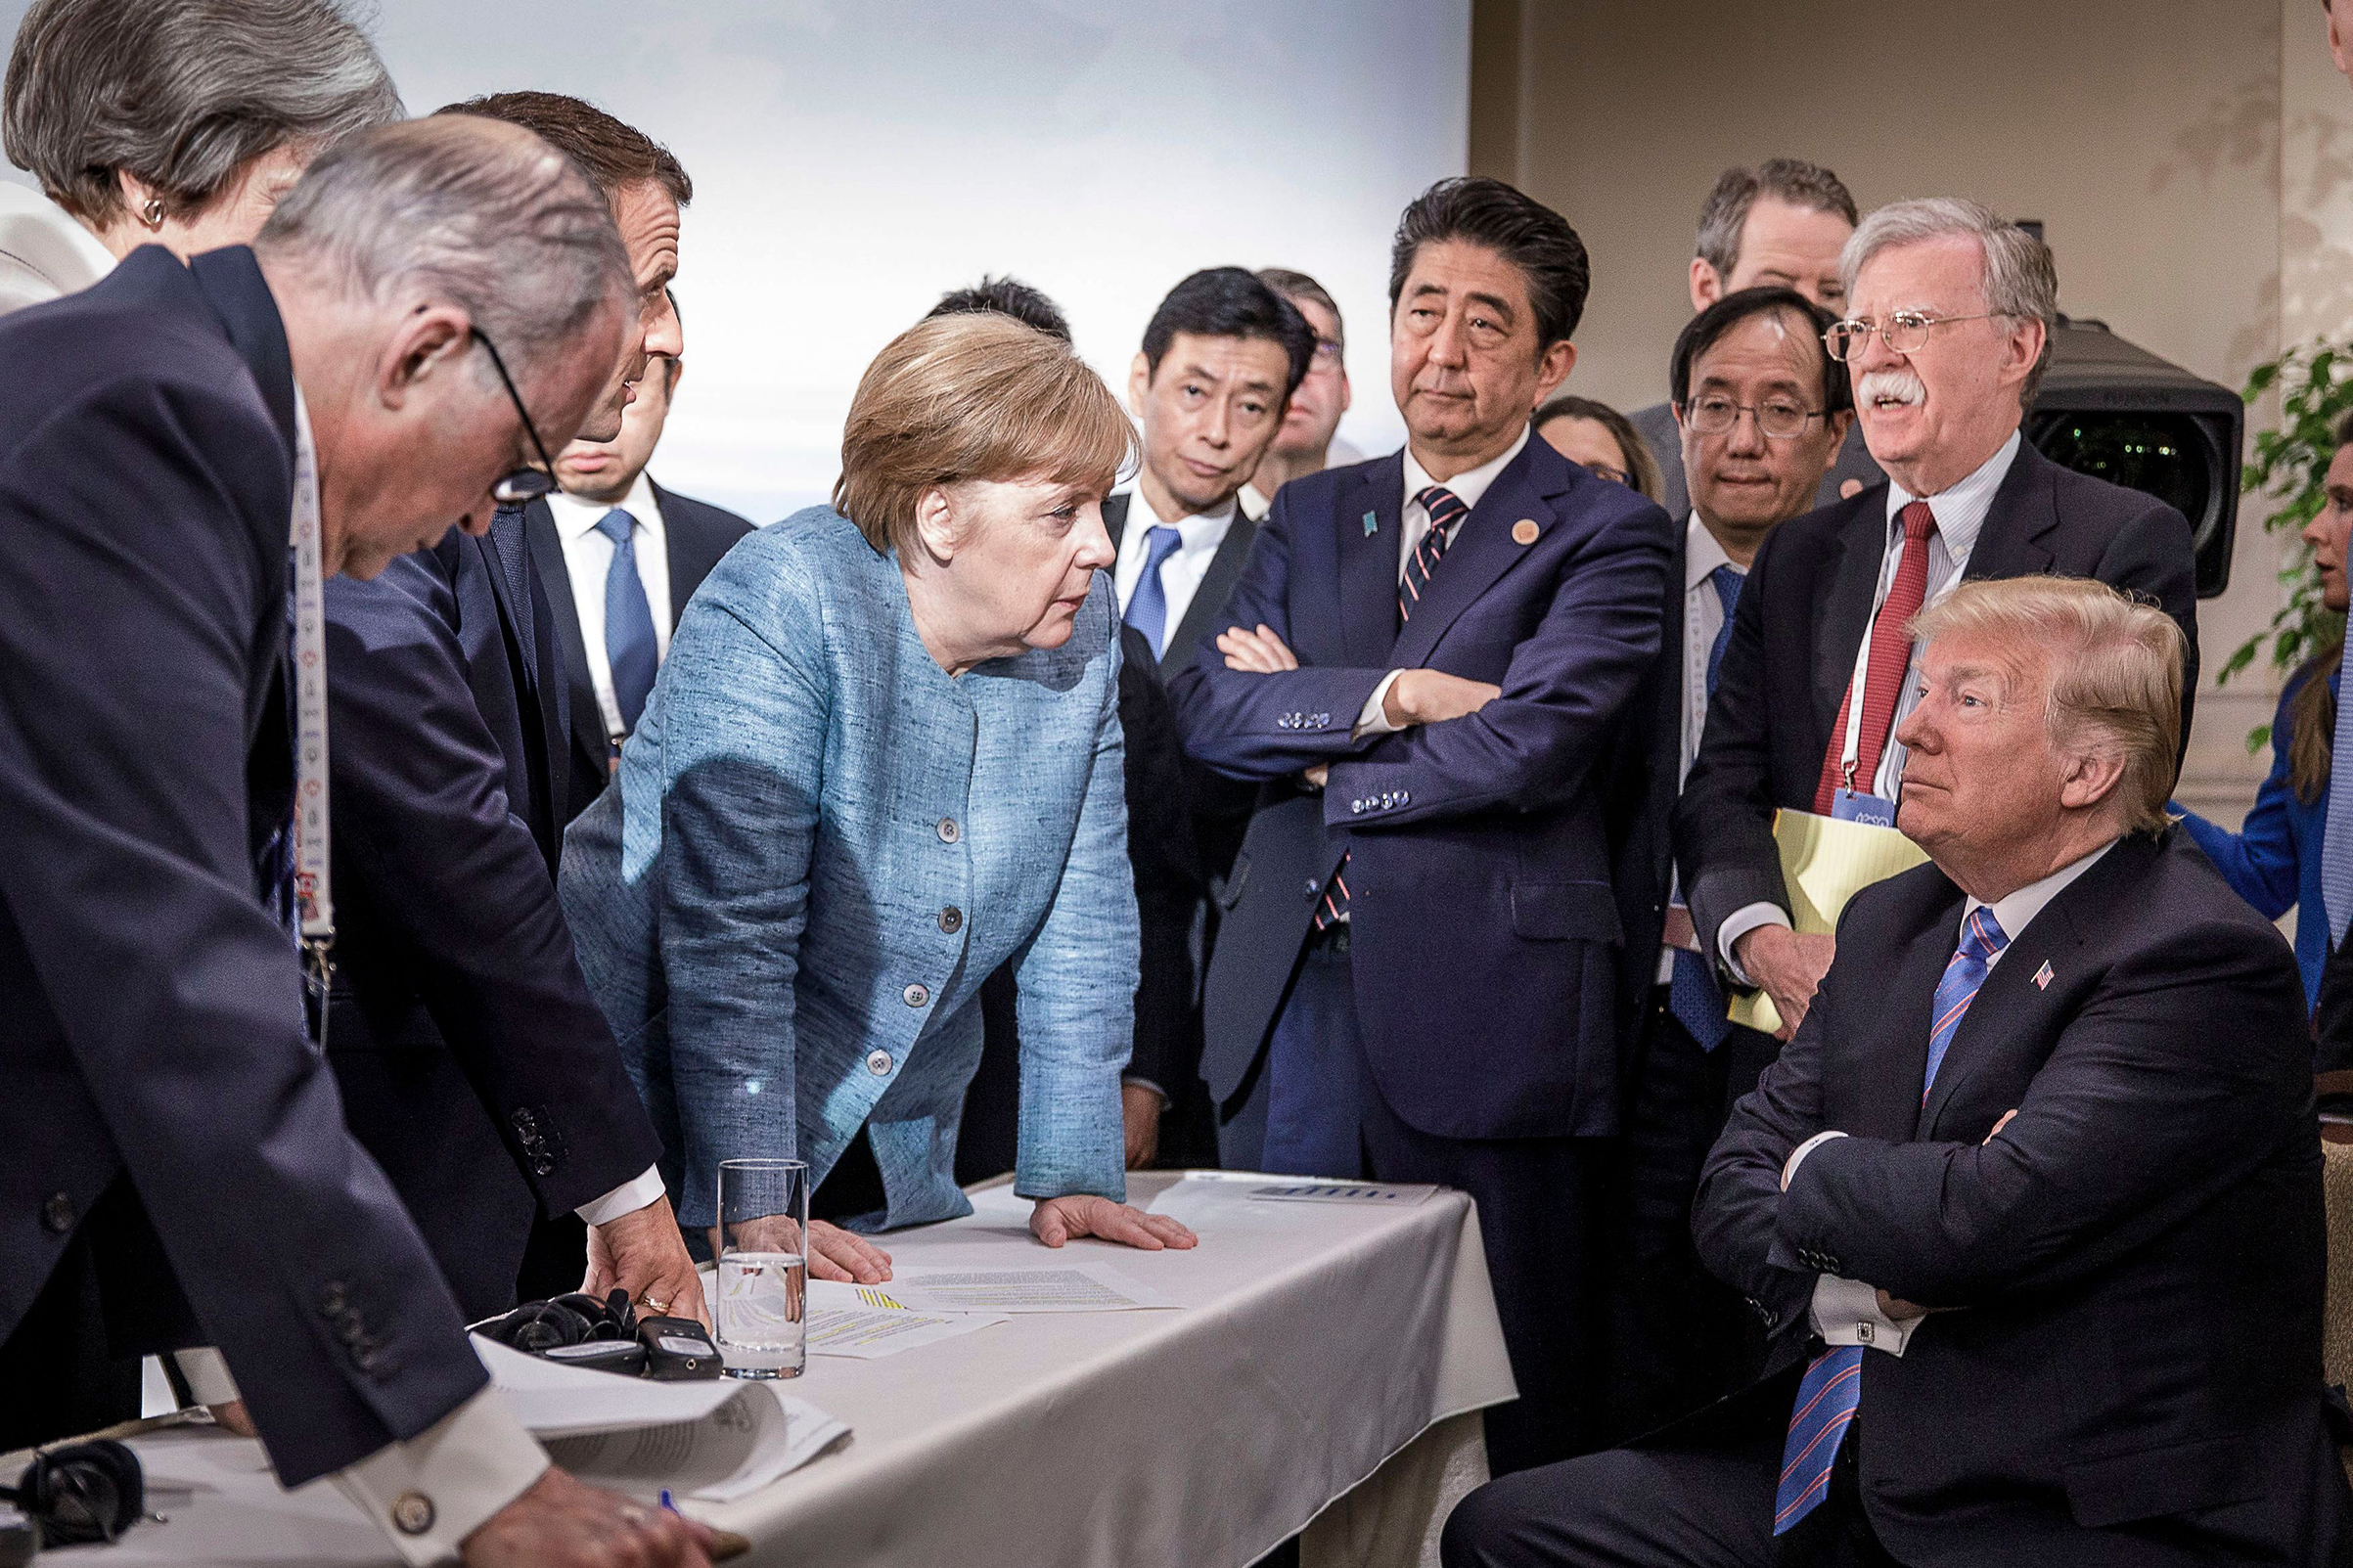 Donald-trump-angela-merkel-g7-summit-